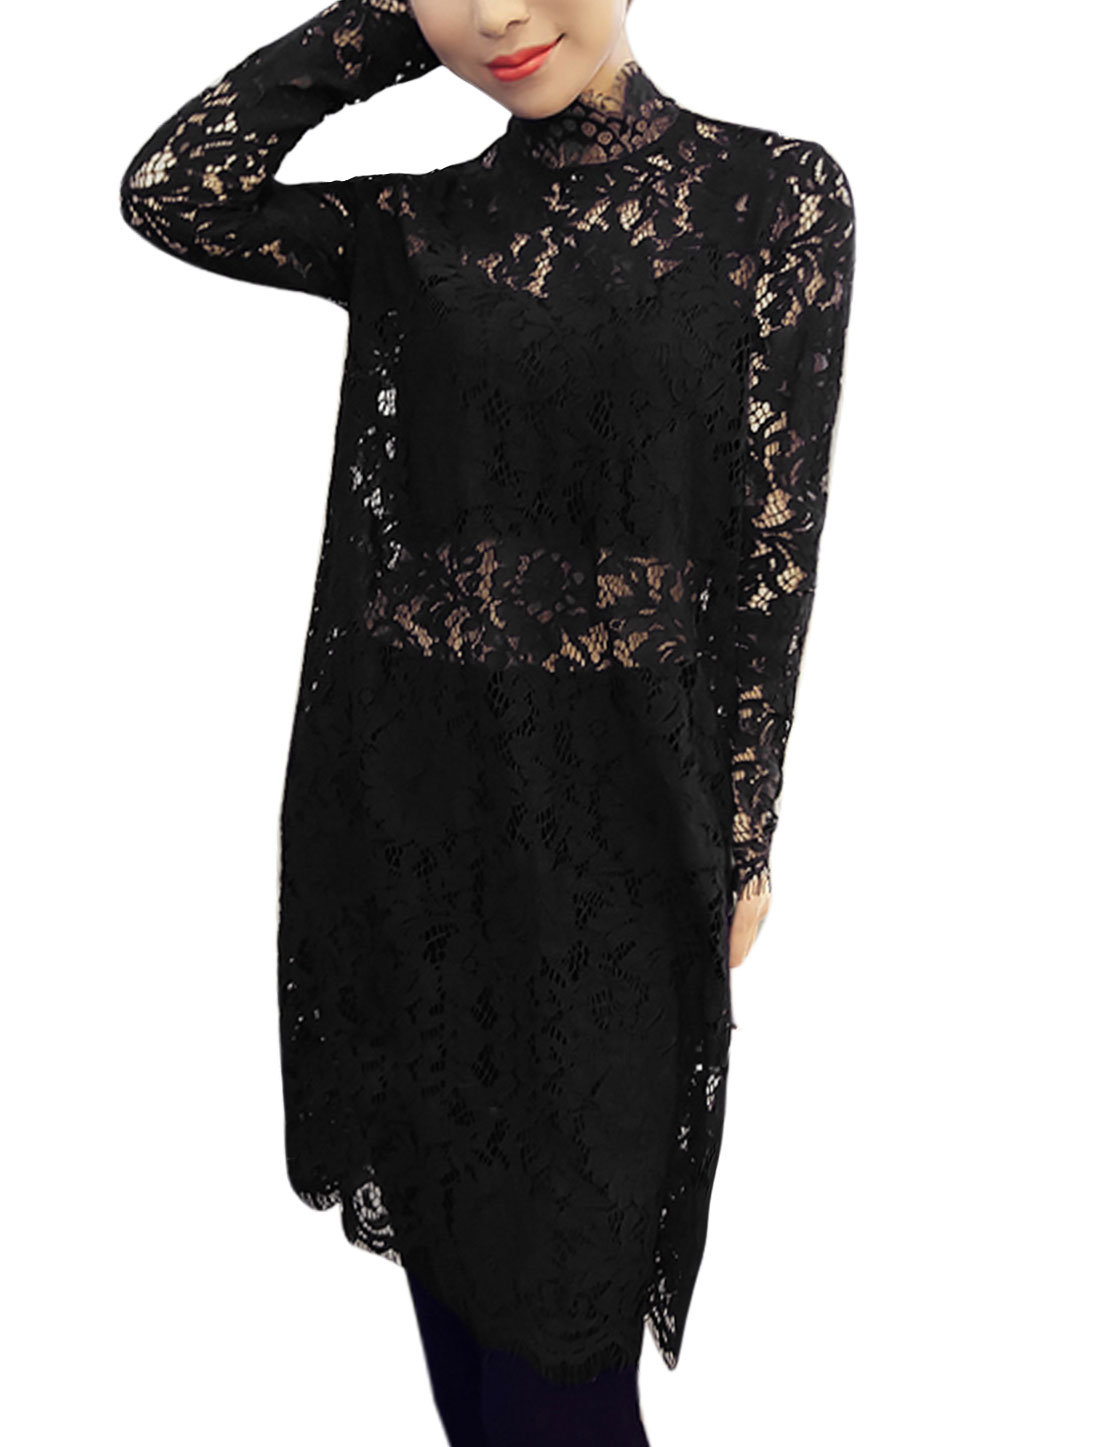 Ladies Long Sleeves See Through Sides Split Tunic Lace Top Black XS